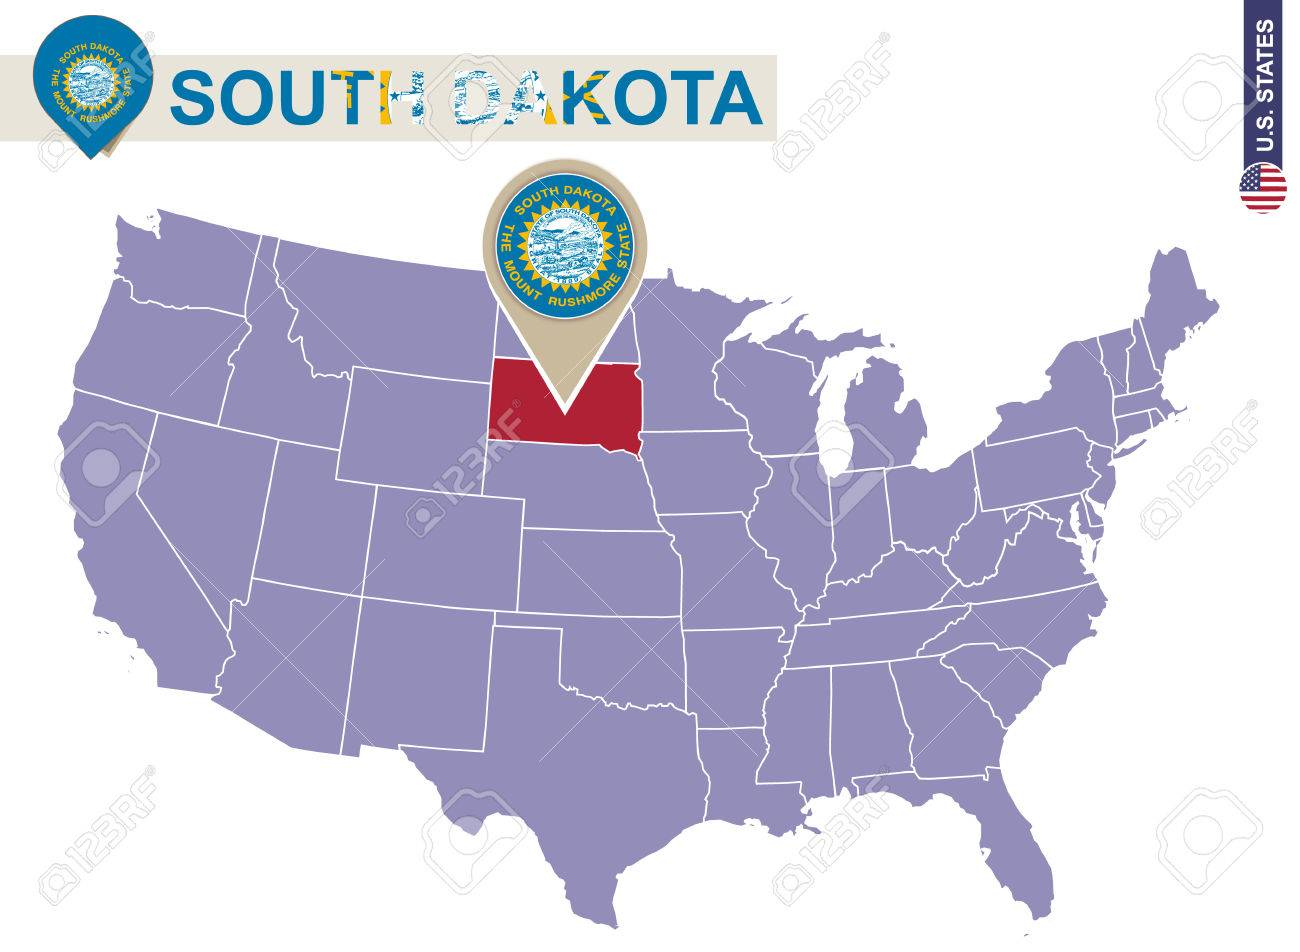 South Dakota Location On The US Map North Dakota Ipl Stately - South dakota on the us map